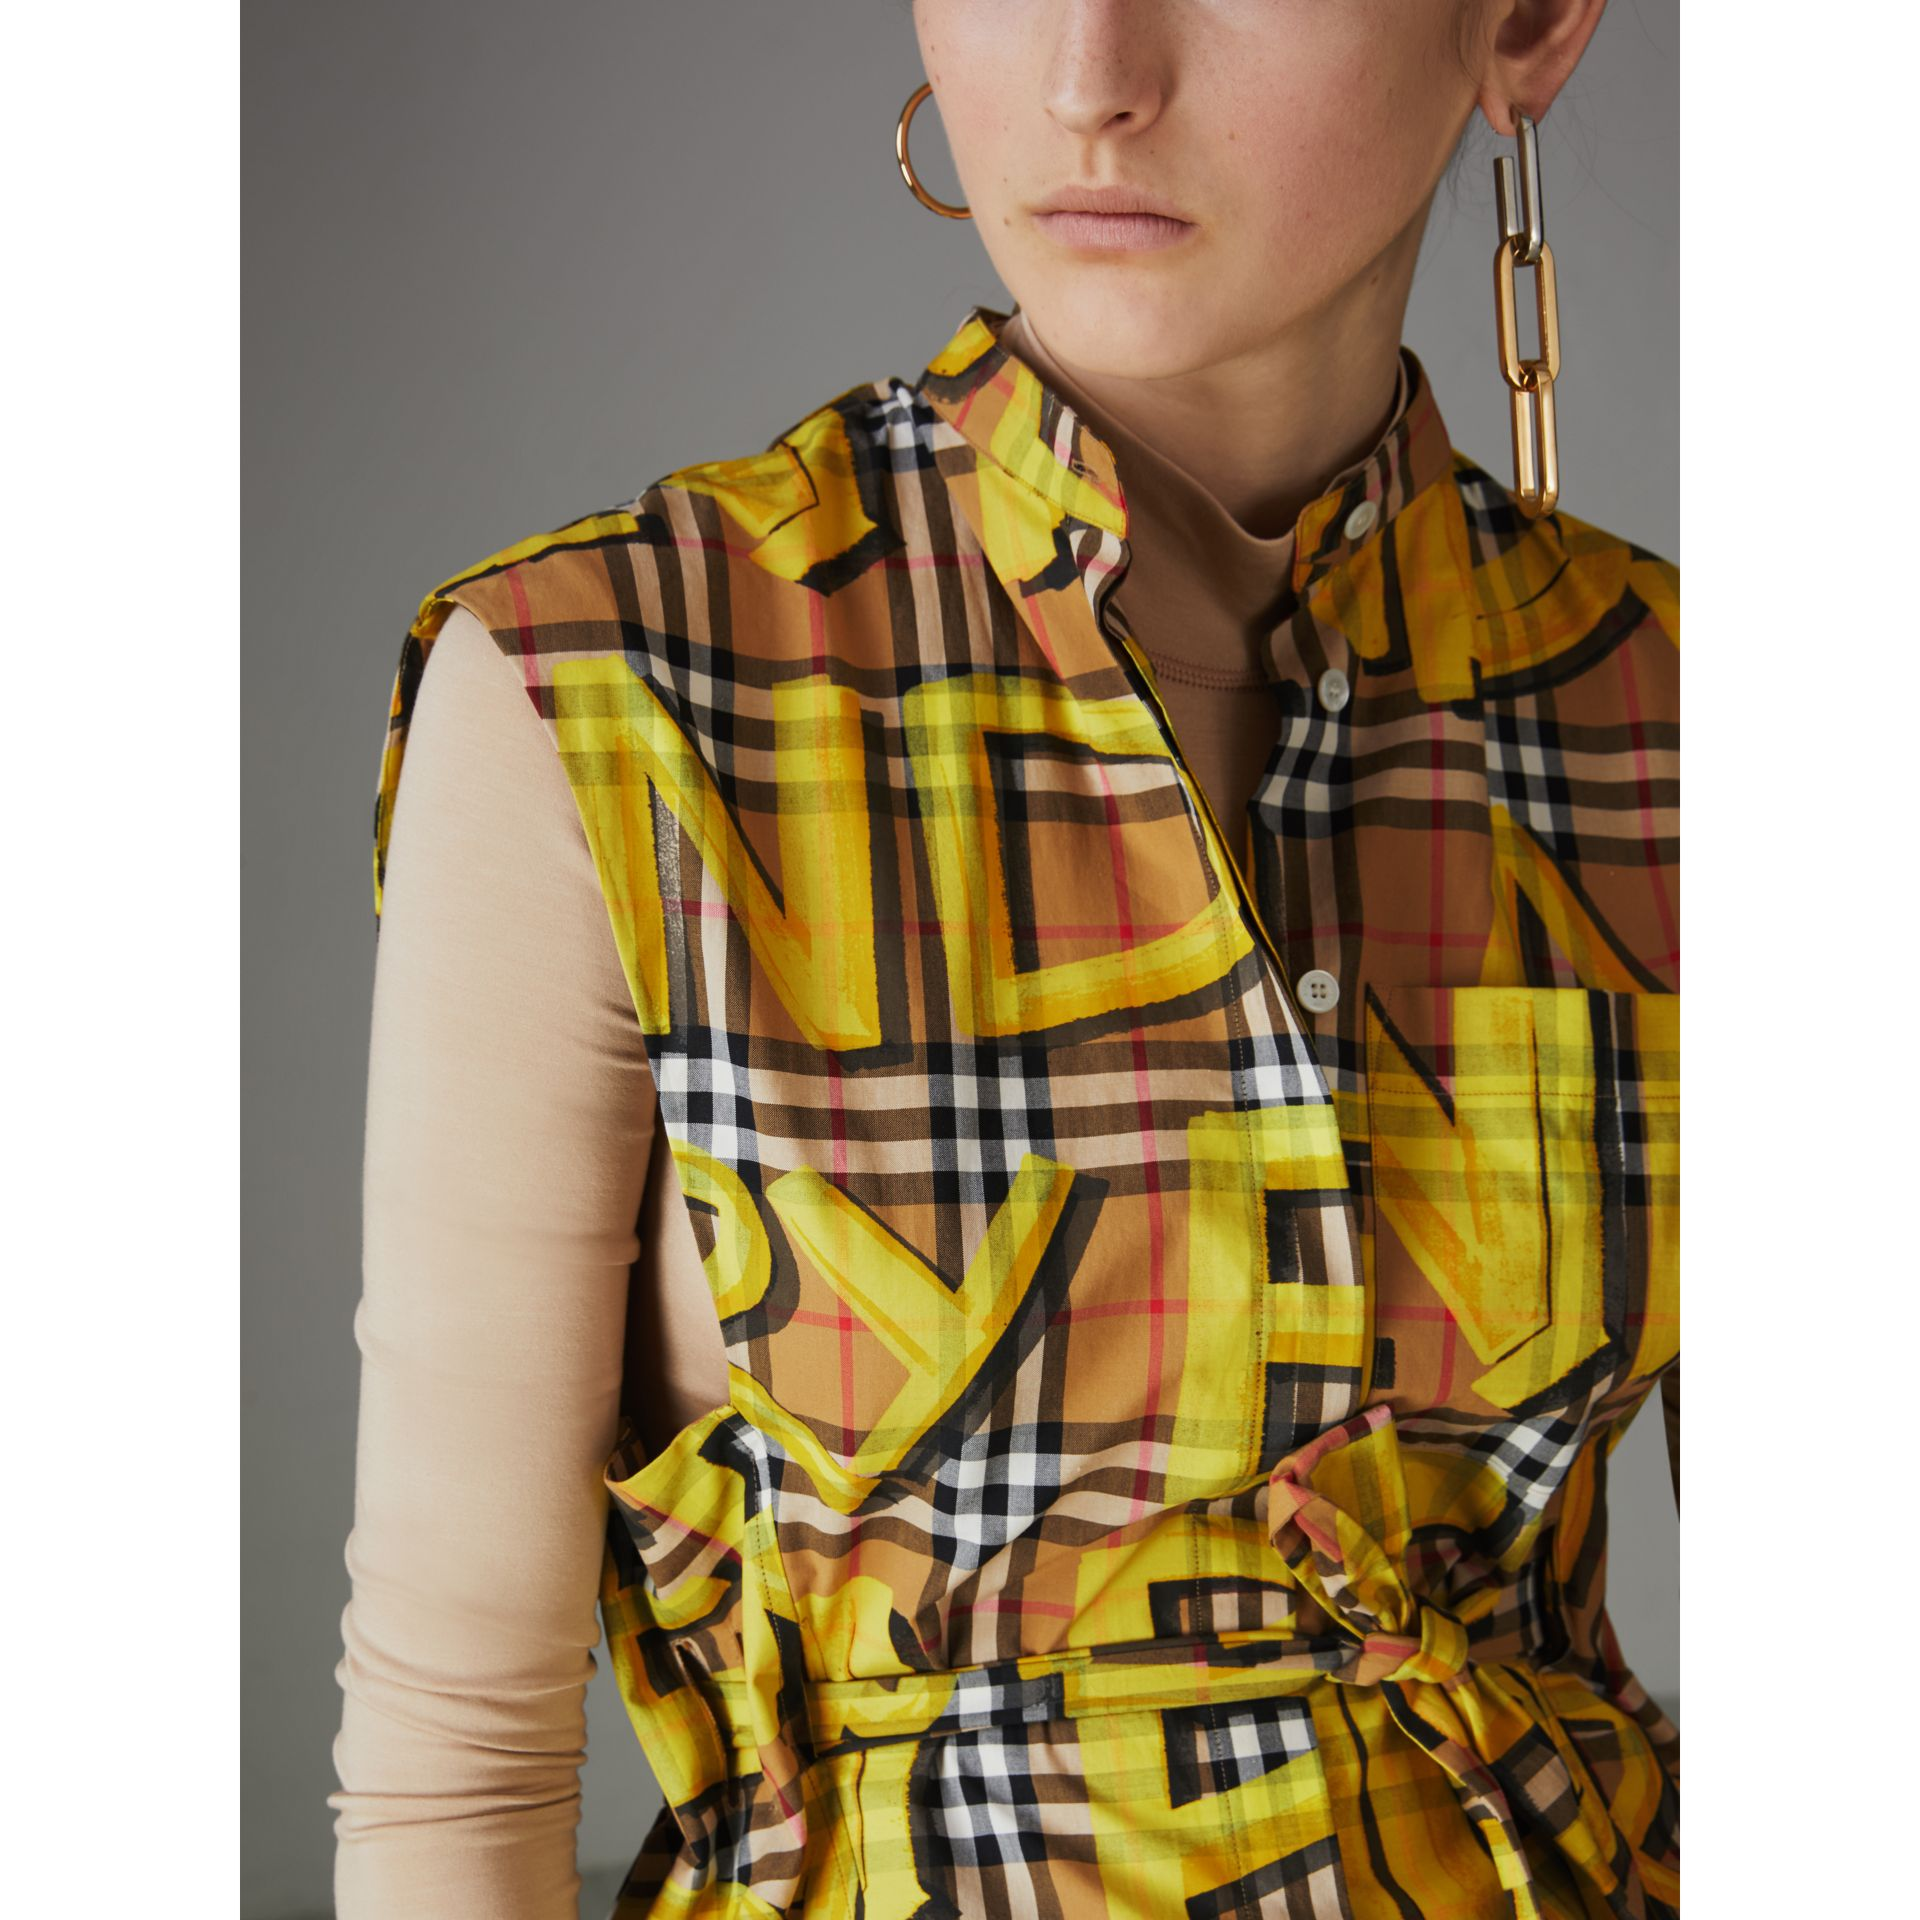 Sleeveless Graffiti Print Vintage Check Cotton Shirt in Bright Yellow - Women | Burberry Australia - gallery image 1